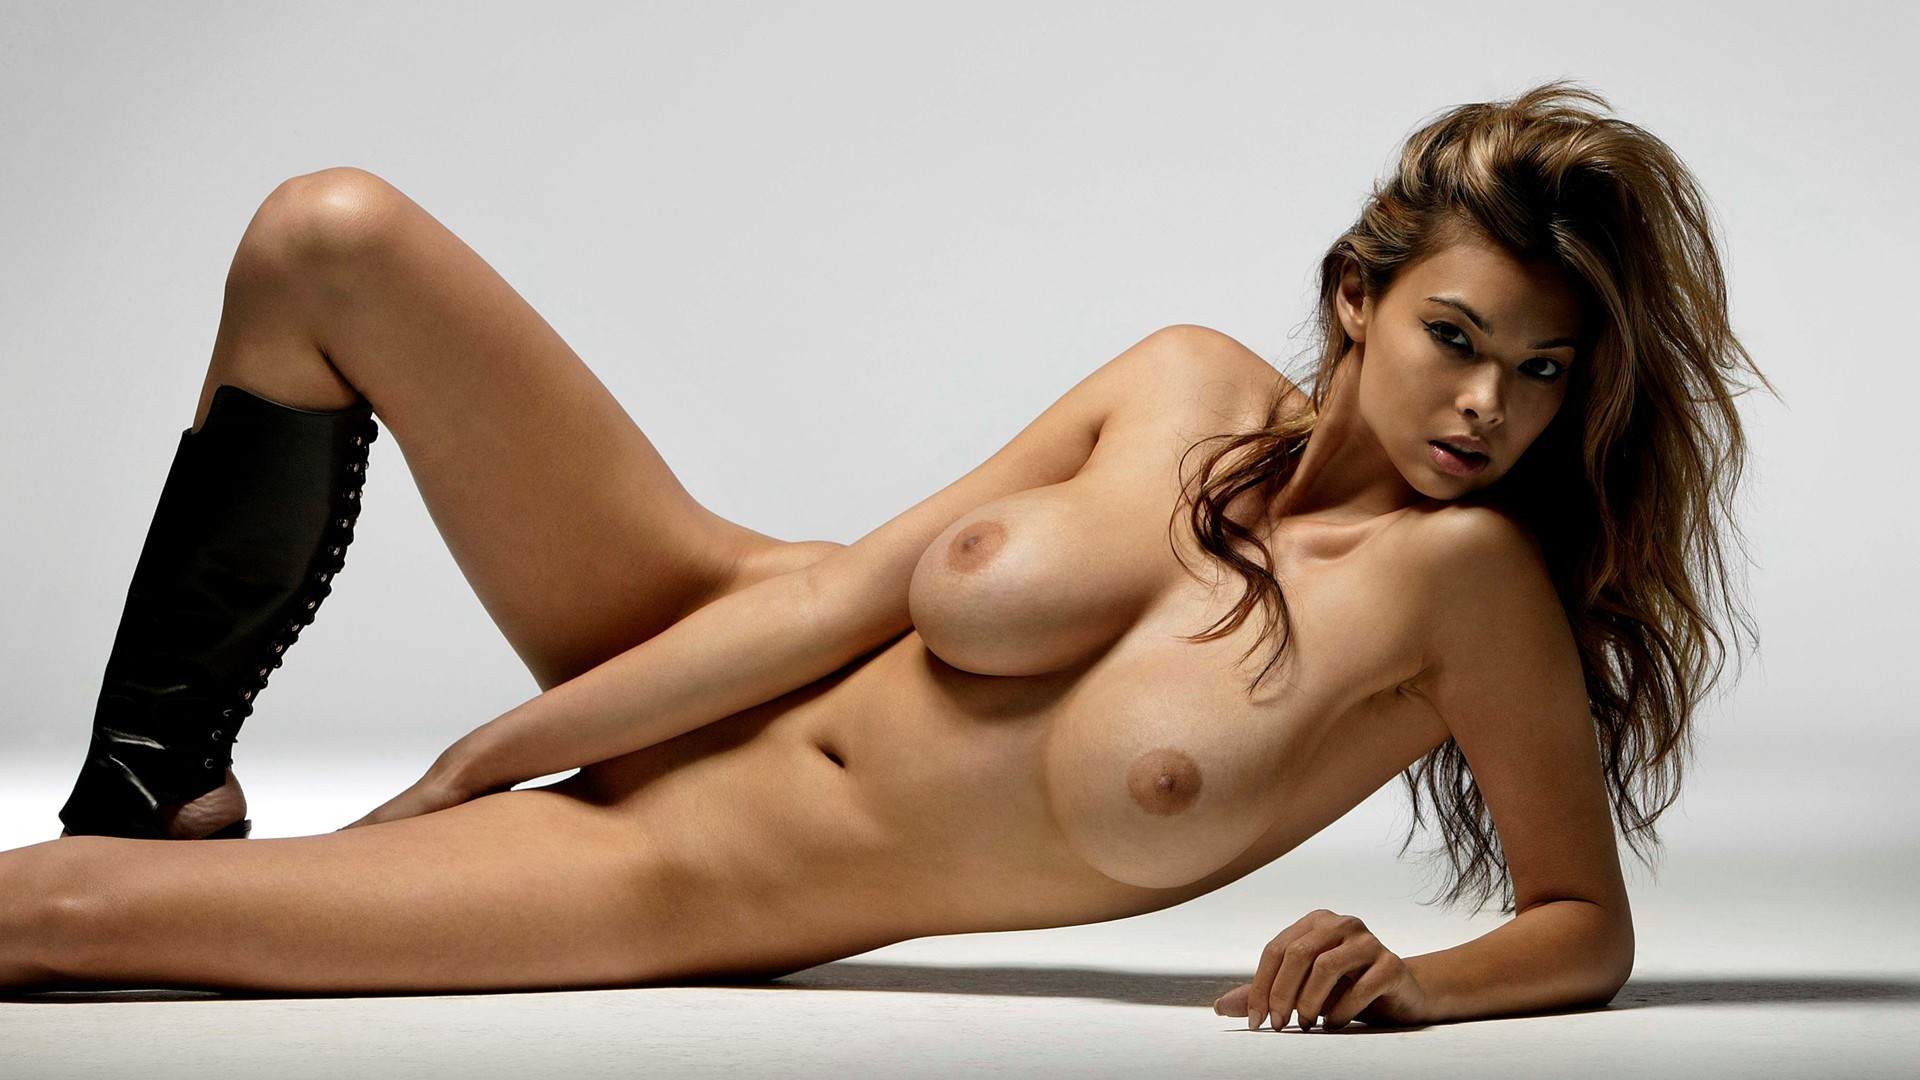 Screen naked girl 6